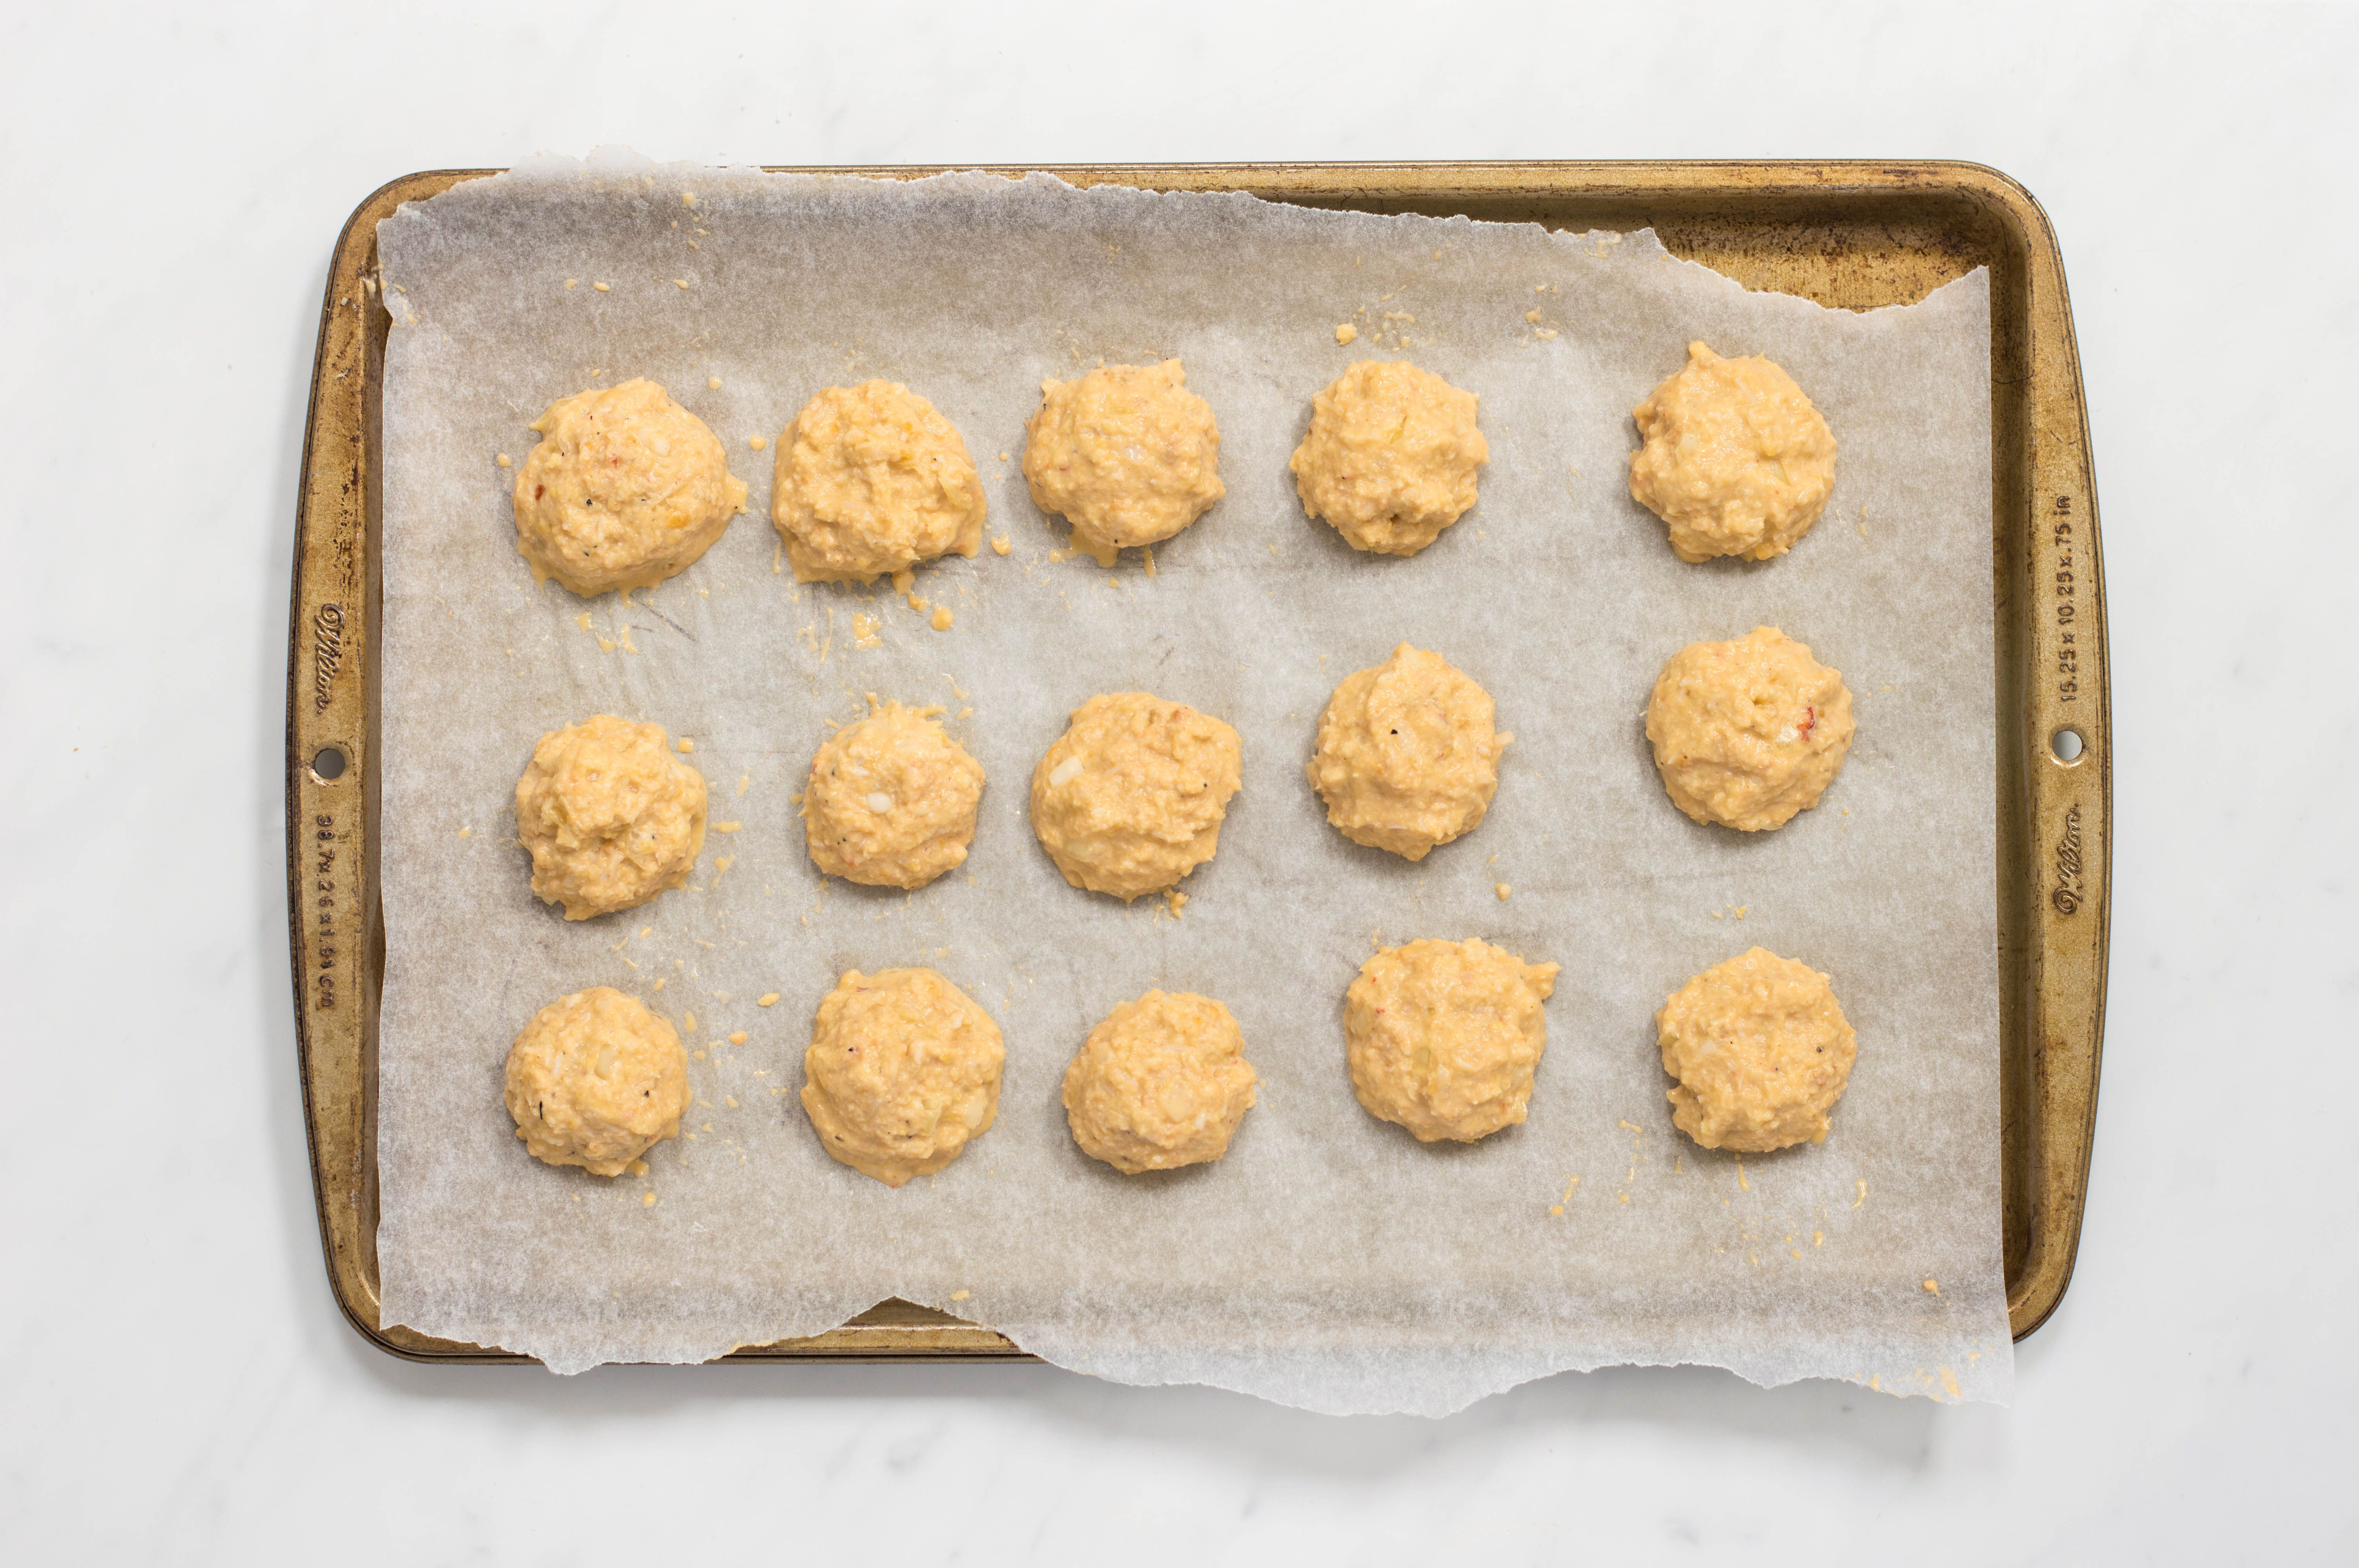 15 crabmeat balls on a baking tray